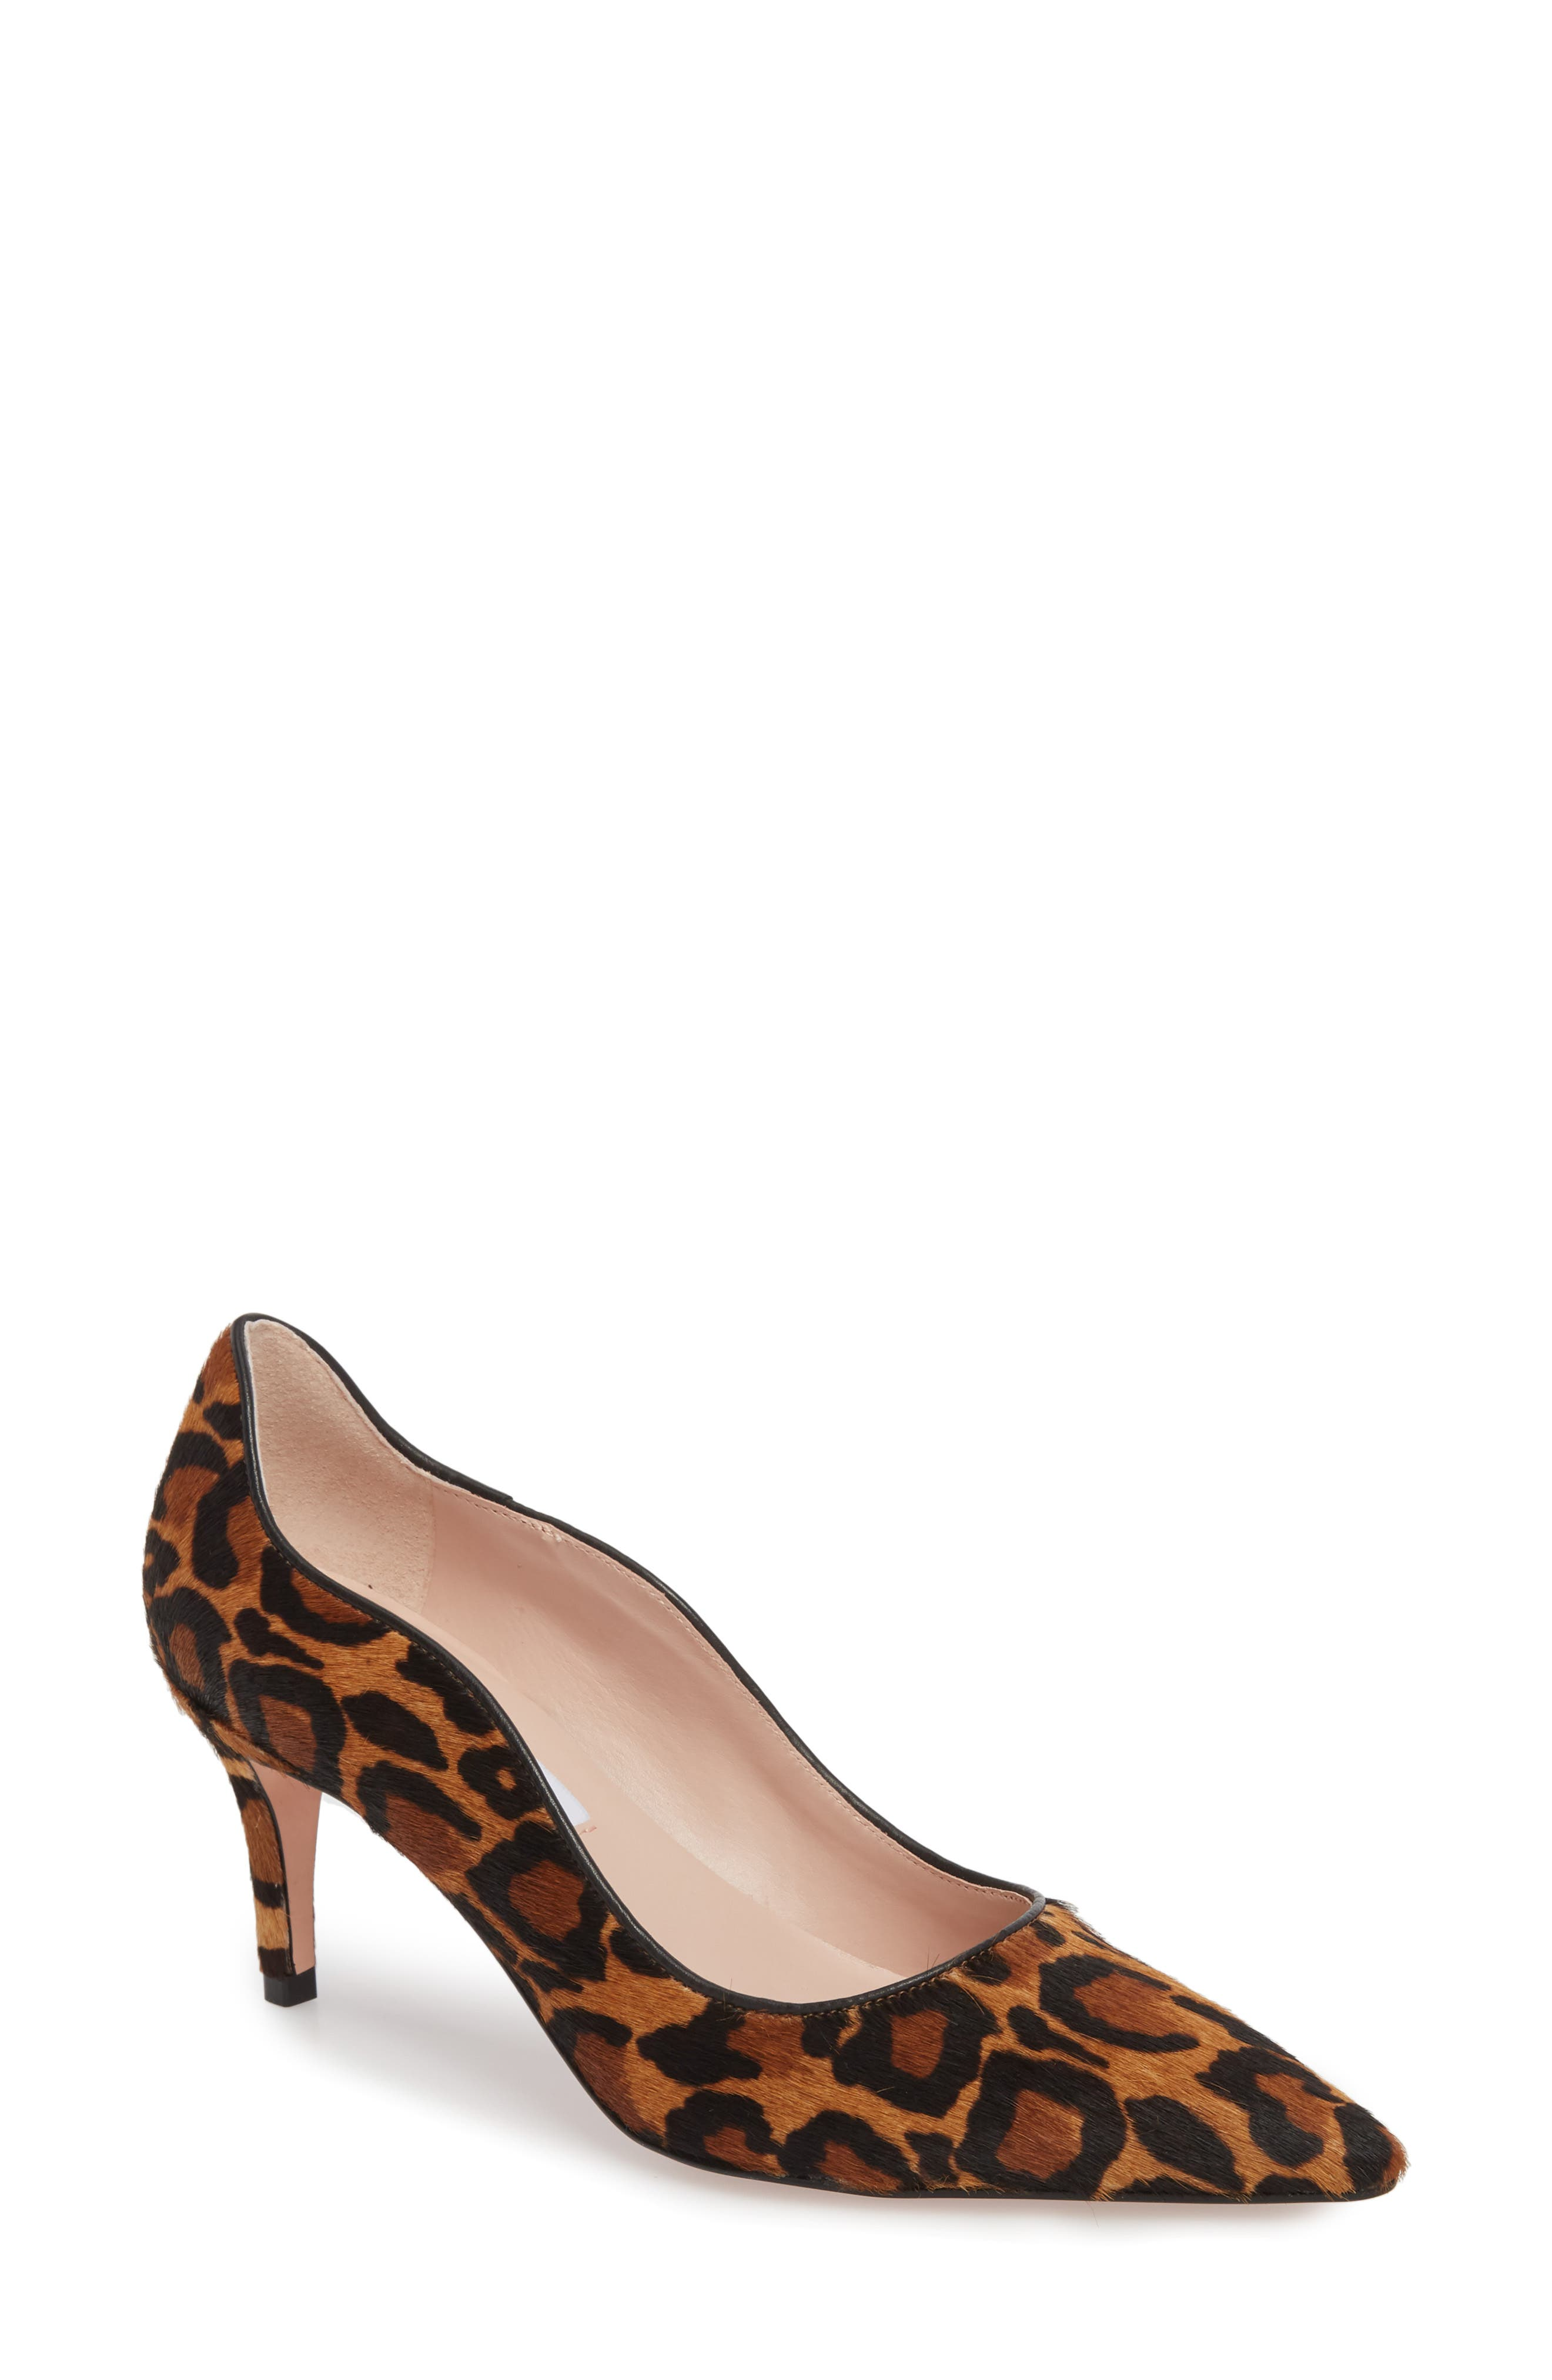 Anika 70 Pump,                         Main,                         color, CAMEL MULTI HAIR CALF